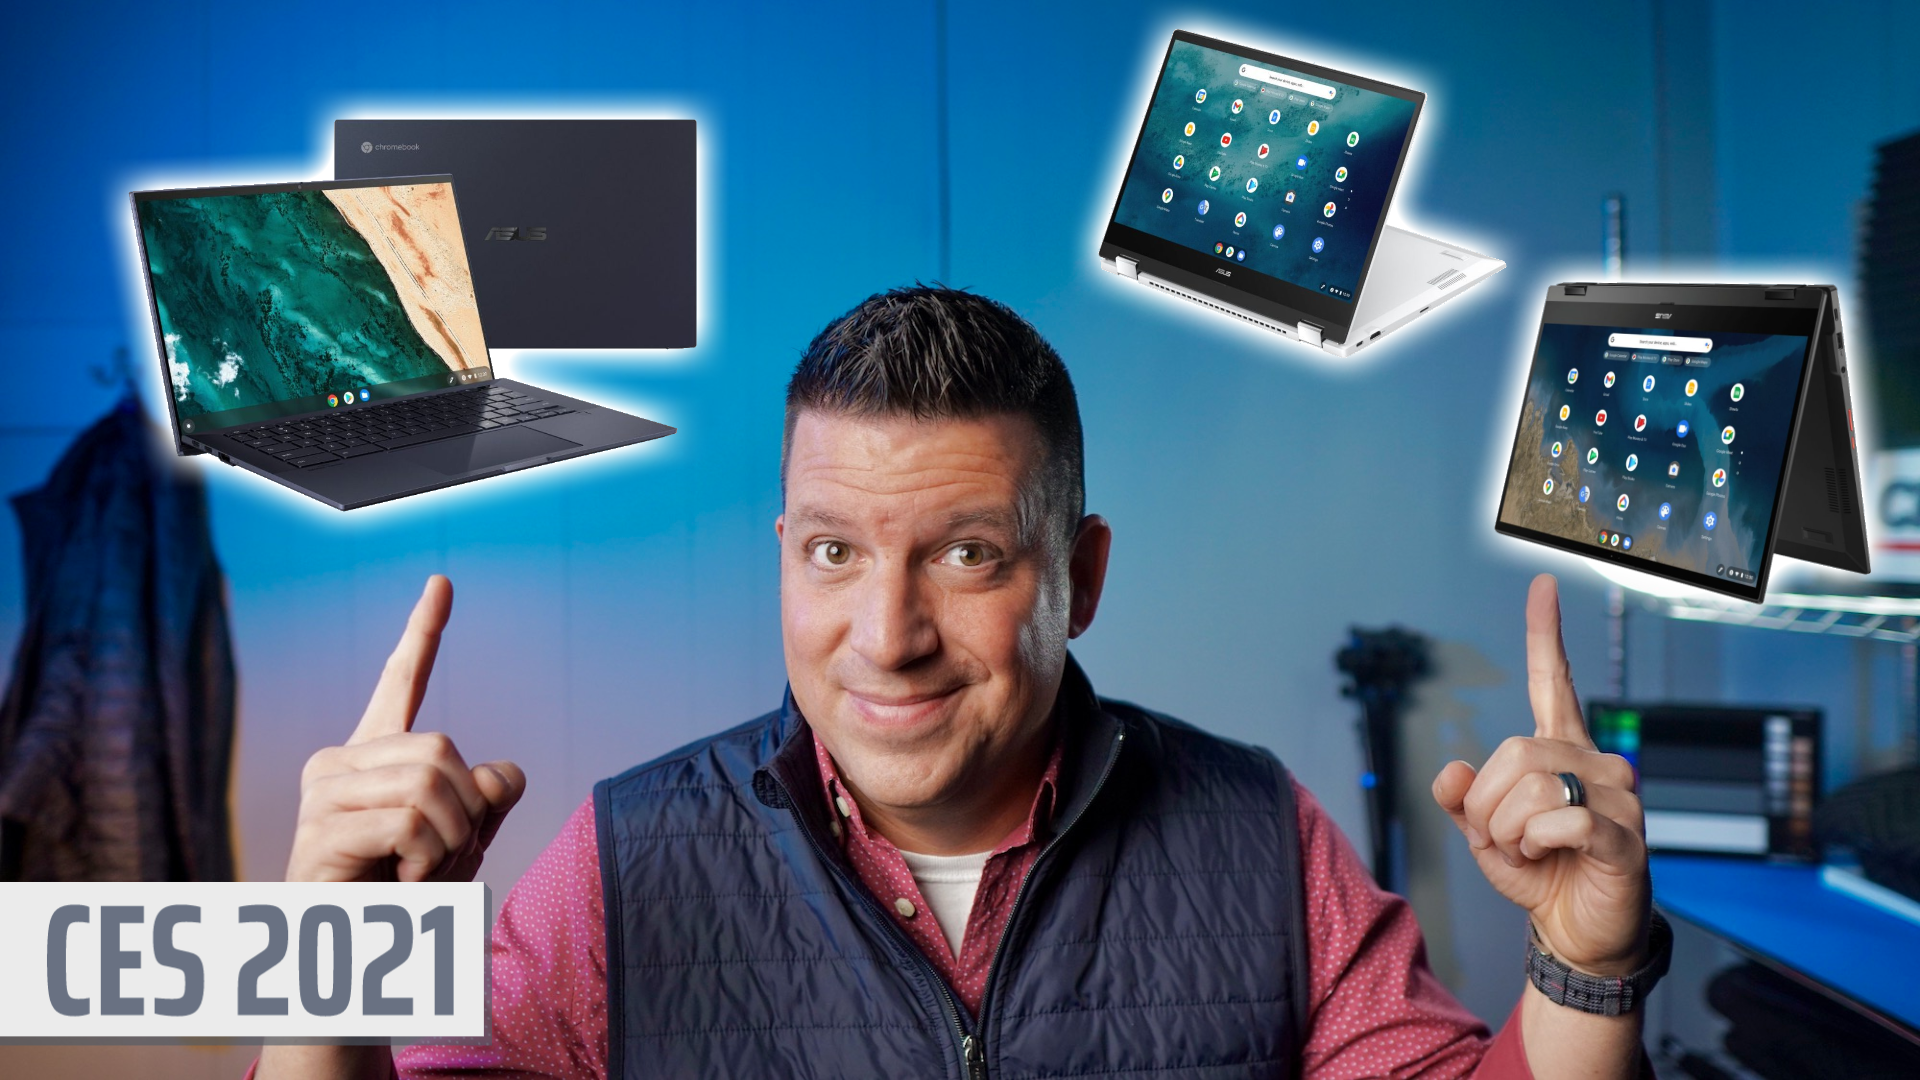 CES 2021: It's time to get excited about ASUS Chromebooks again [VIDEO]